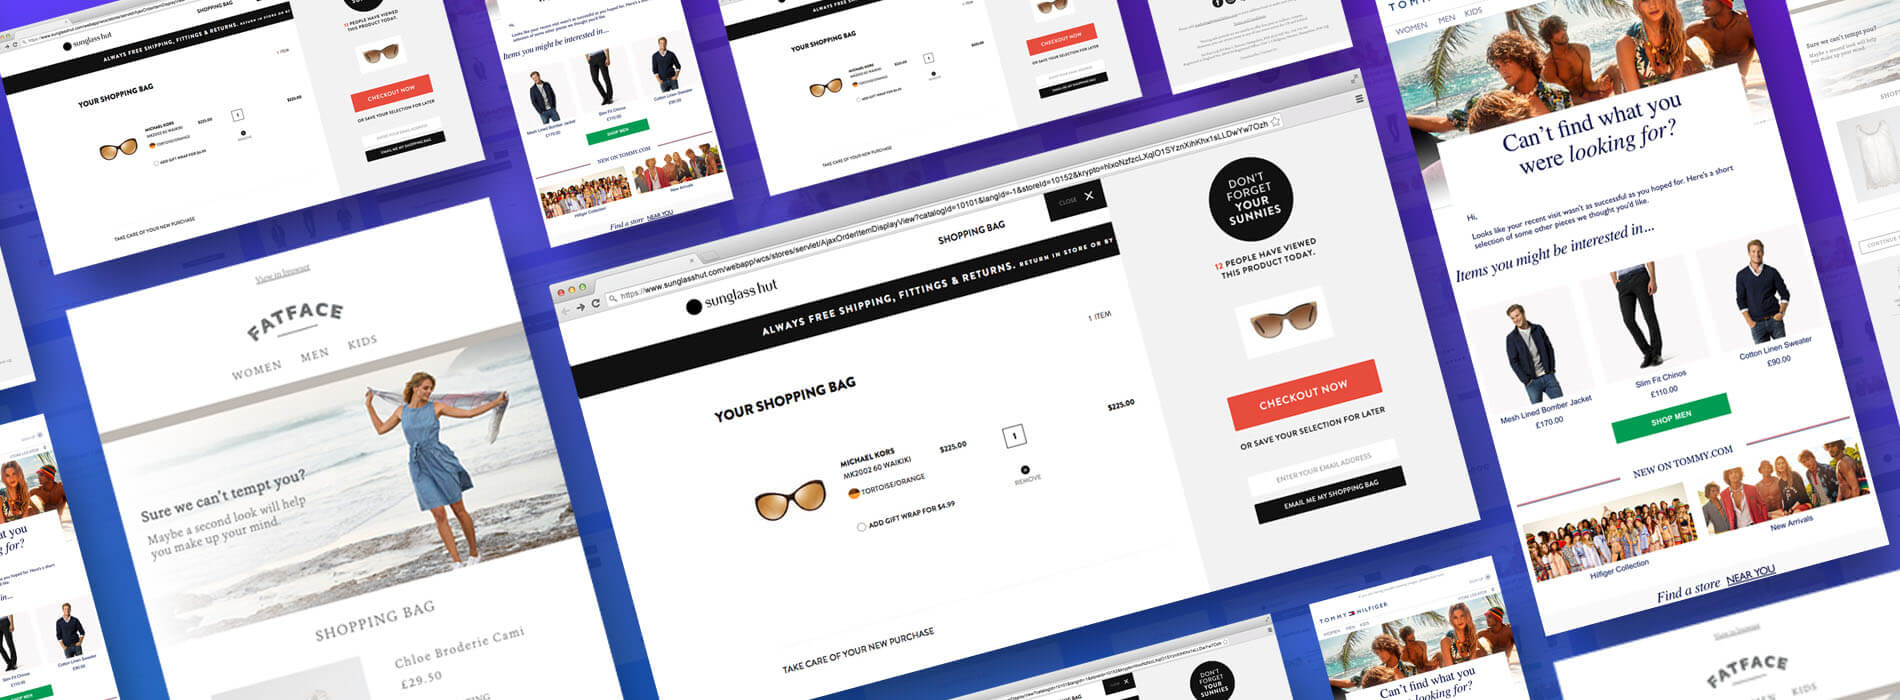 Five Examples of Personalization from Fashion Retailers